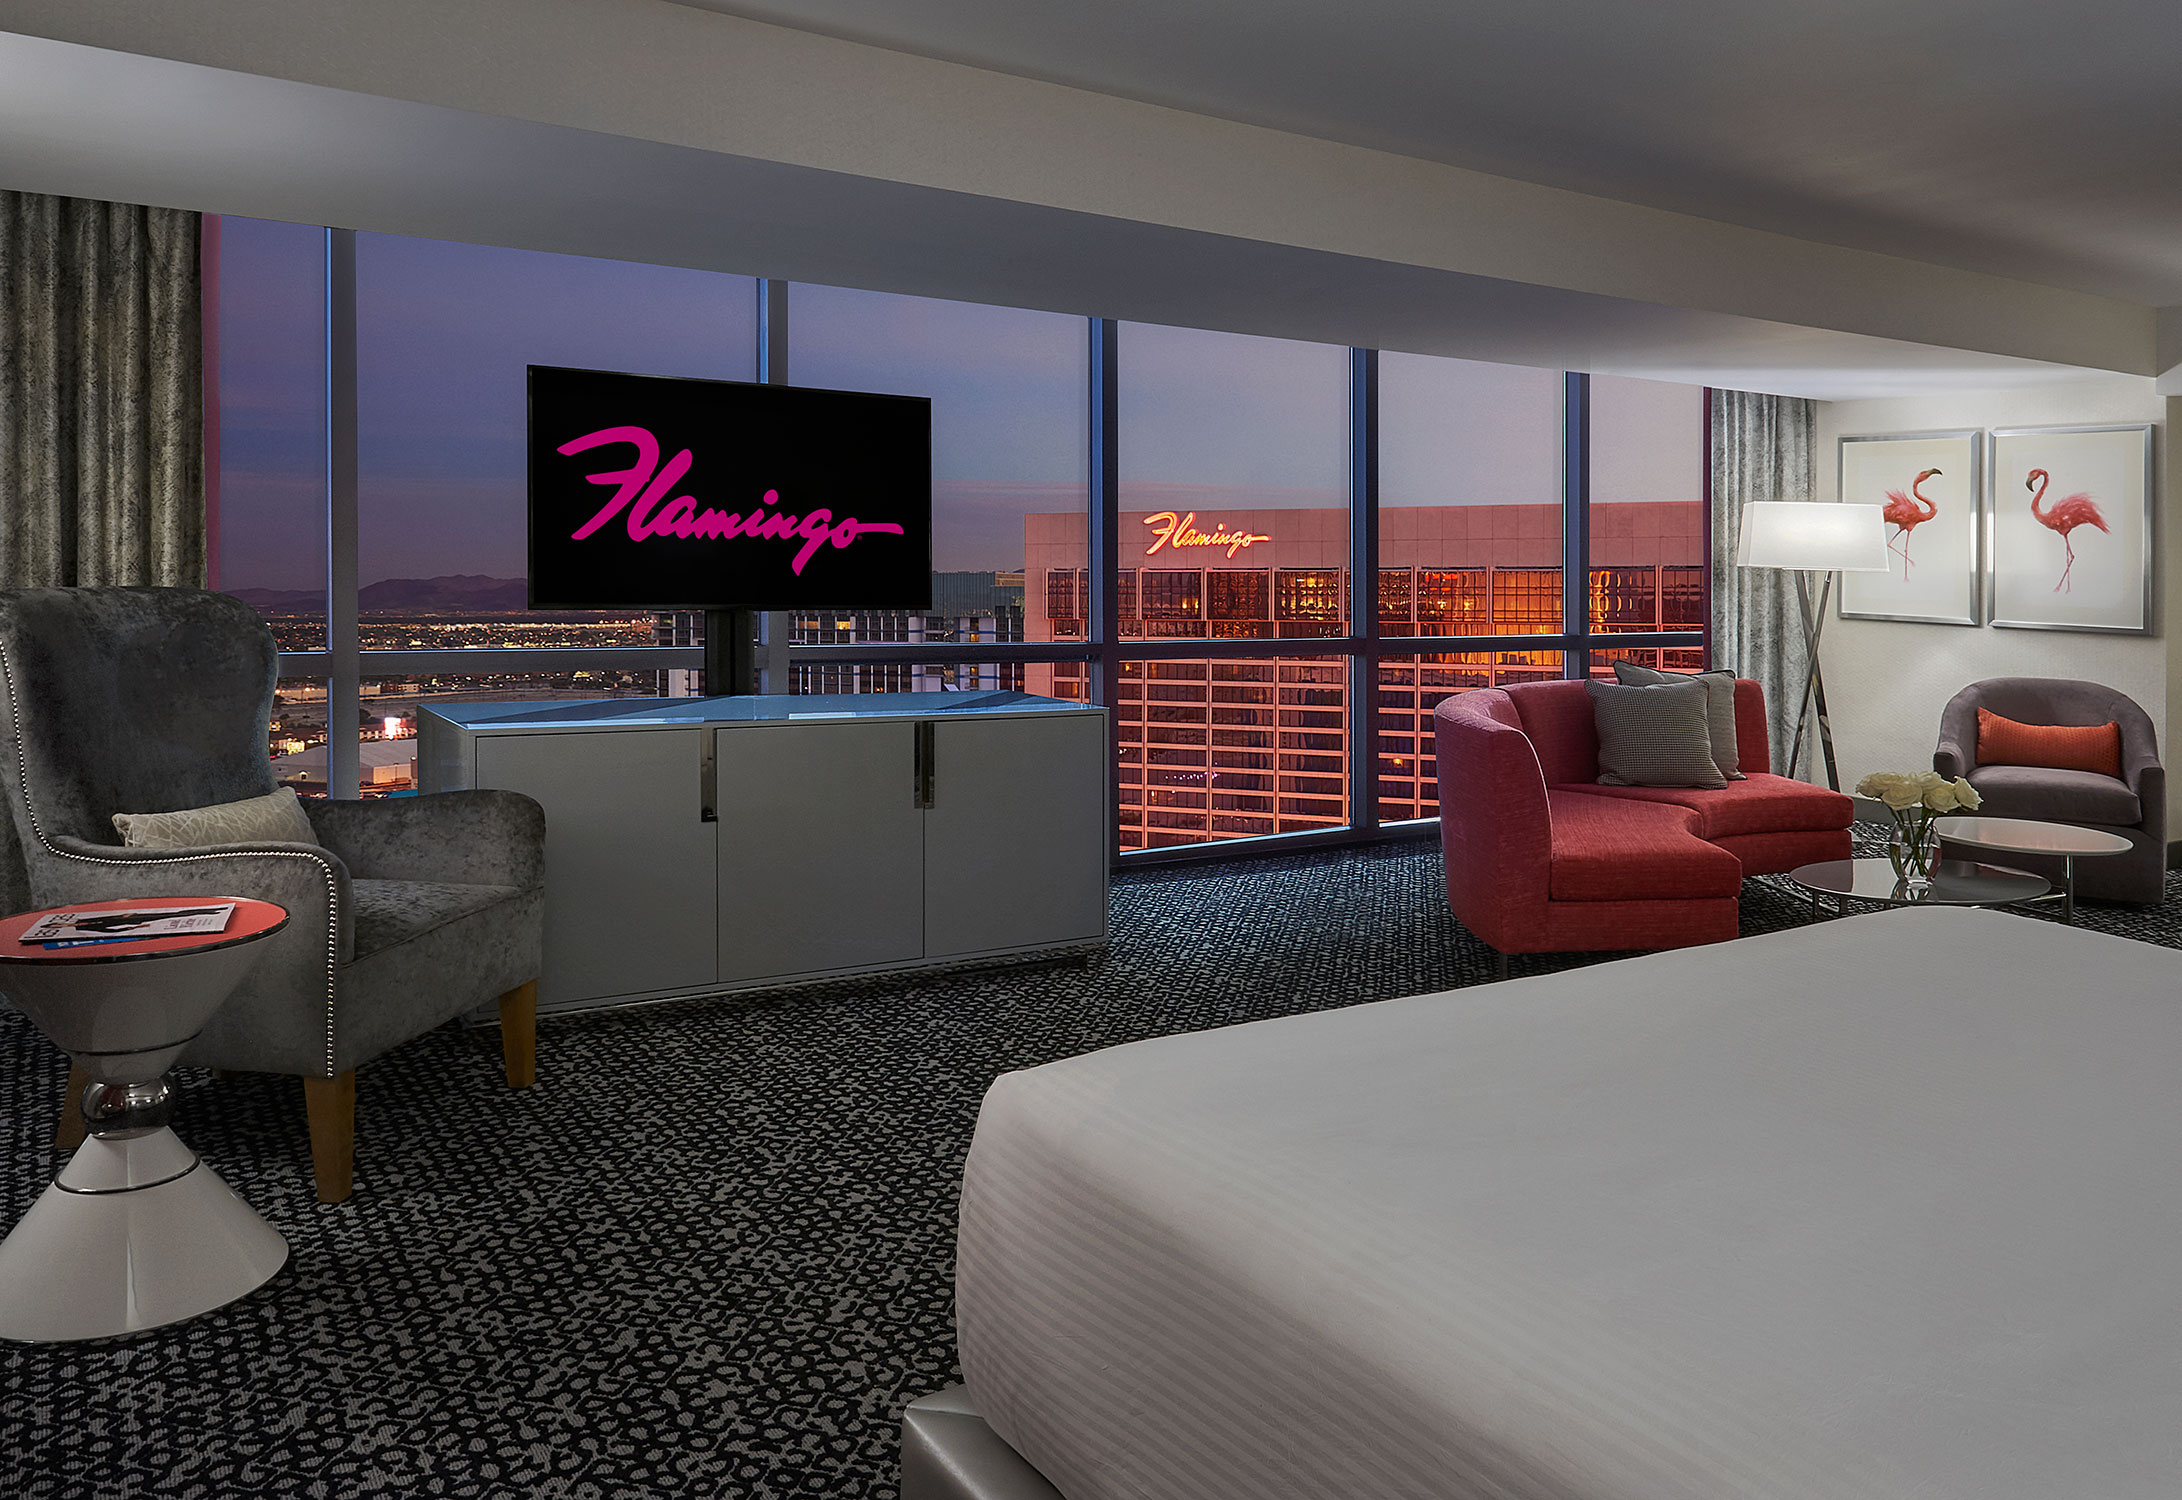 093THE-FLAMINGO-ROOM-27173-OverviewWithLogo